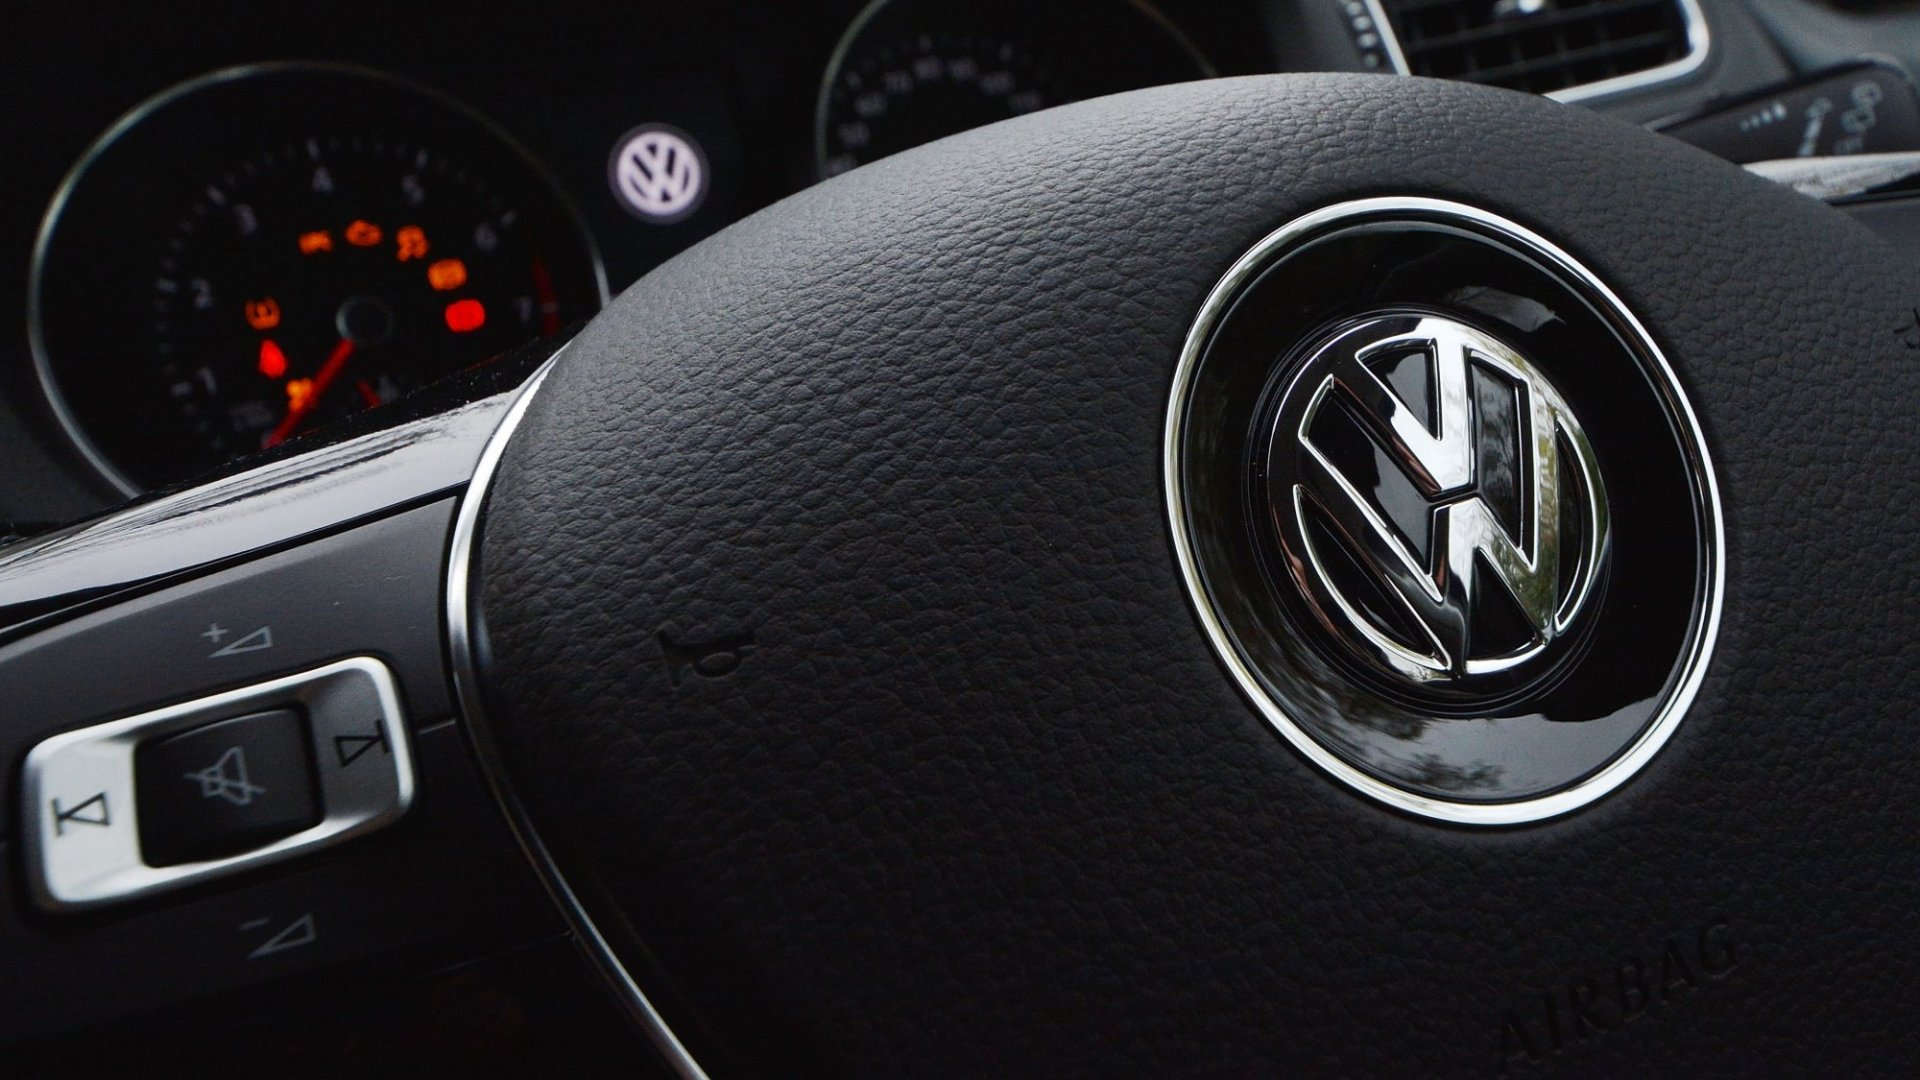 3 Customer Experience Secrets You Can Learn From Volkswagen's Customer Experience Expert Down Under